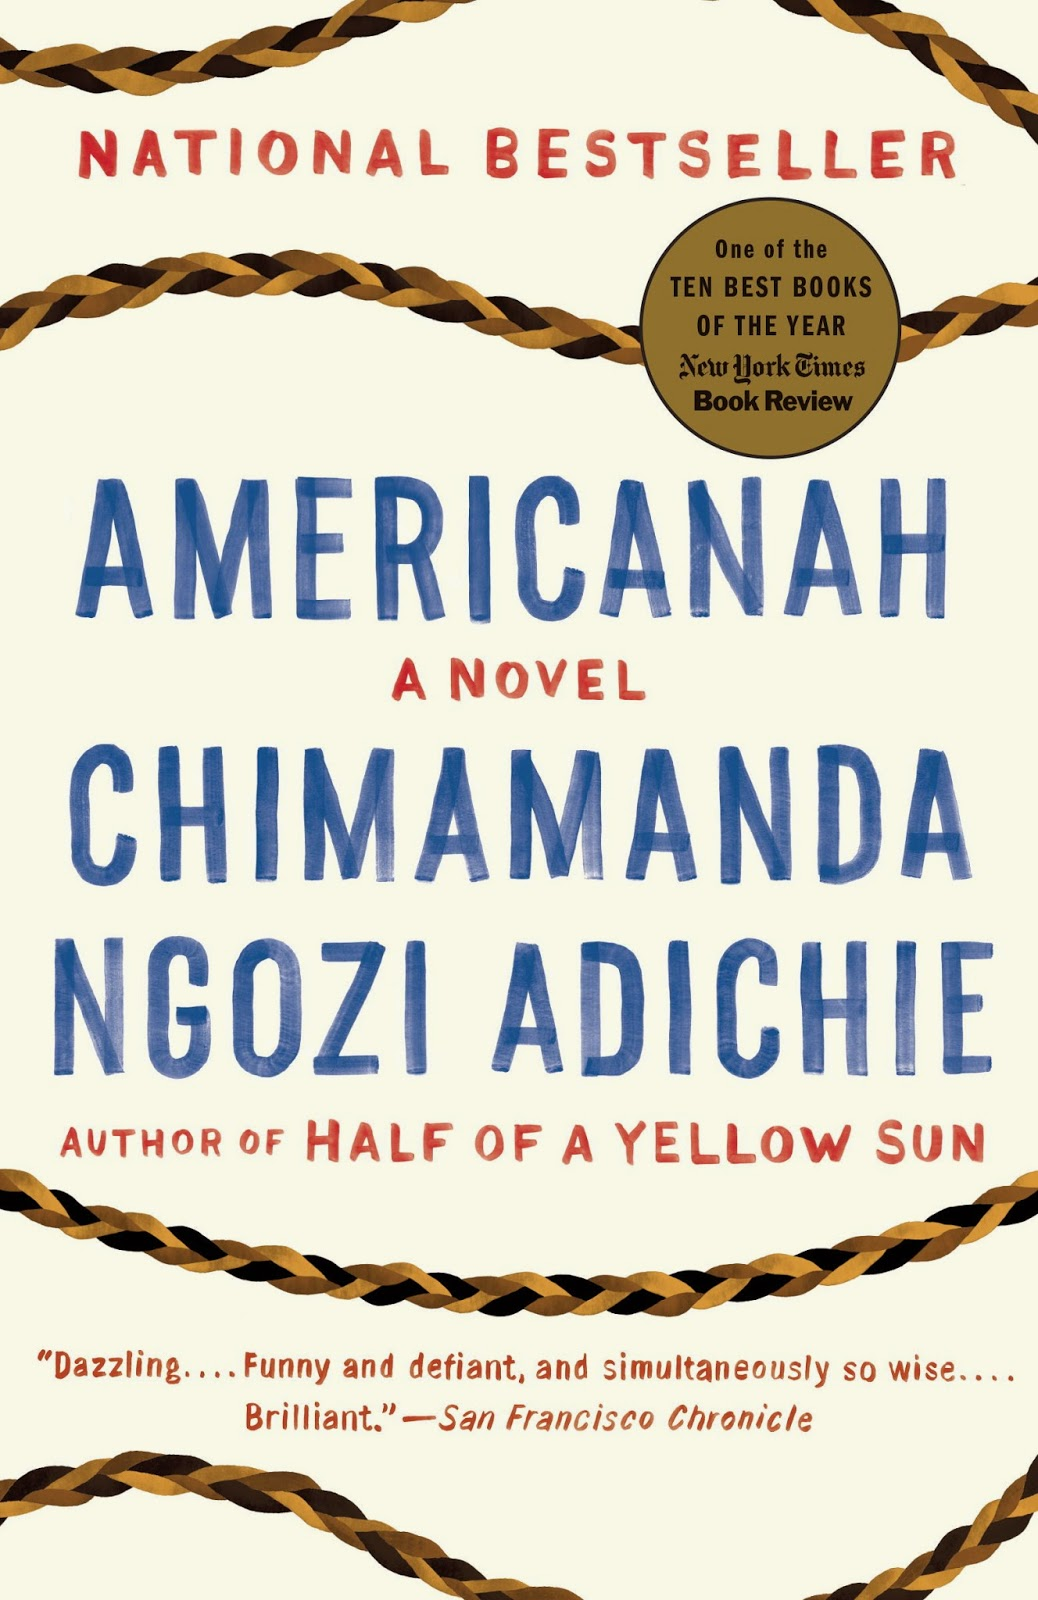 http://discover.halifaxpubliclibraries.ca/?q=title:%22americanah%22